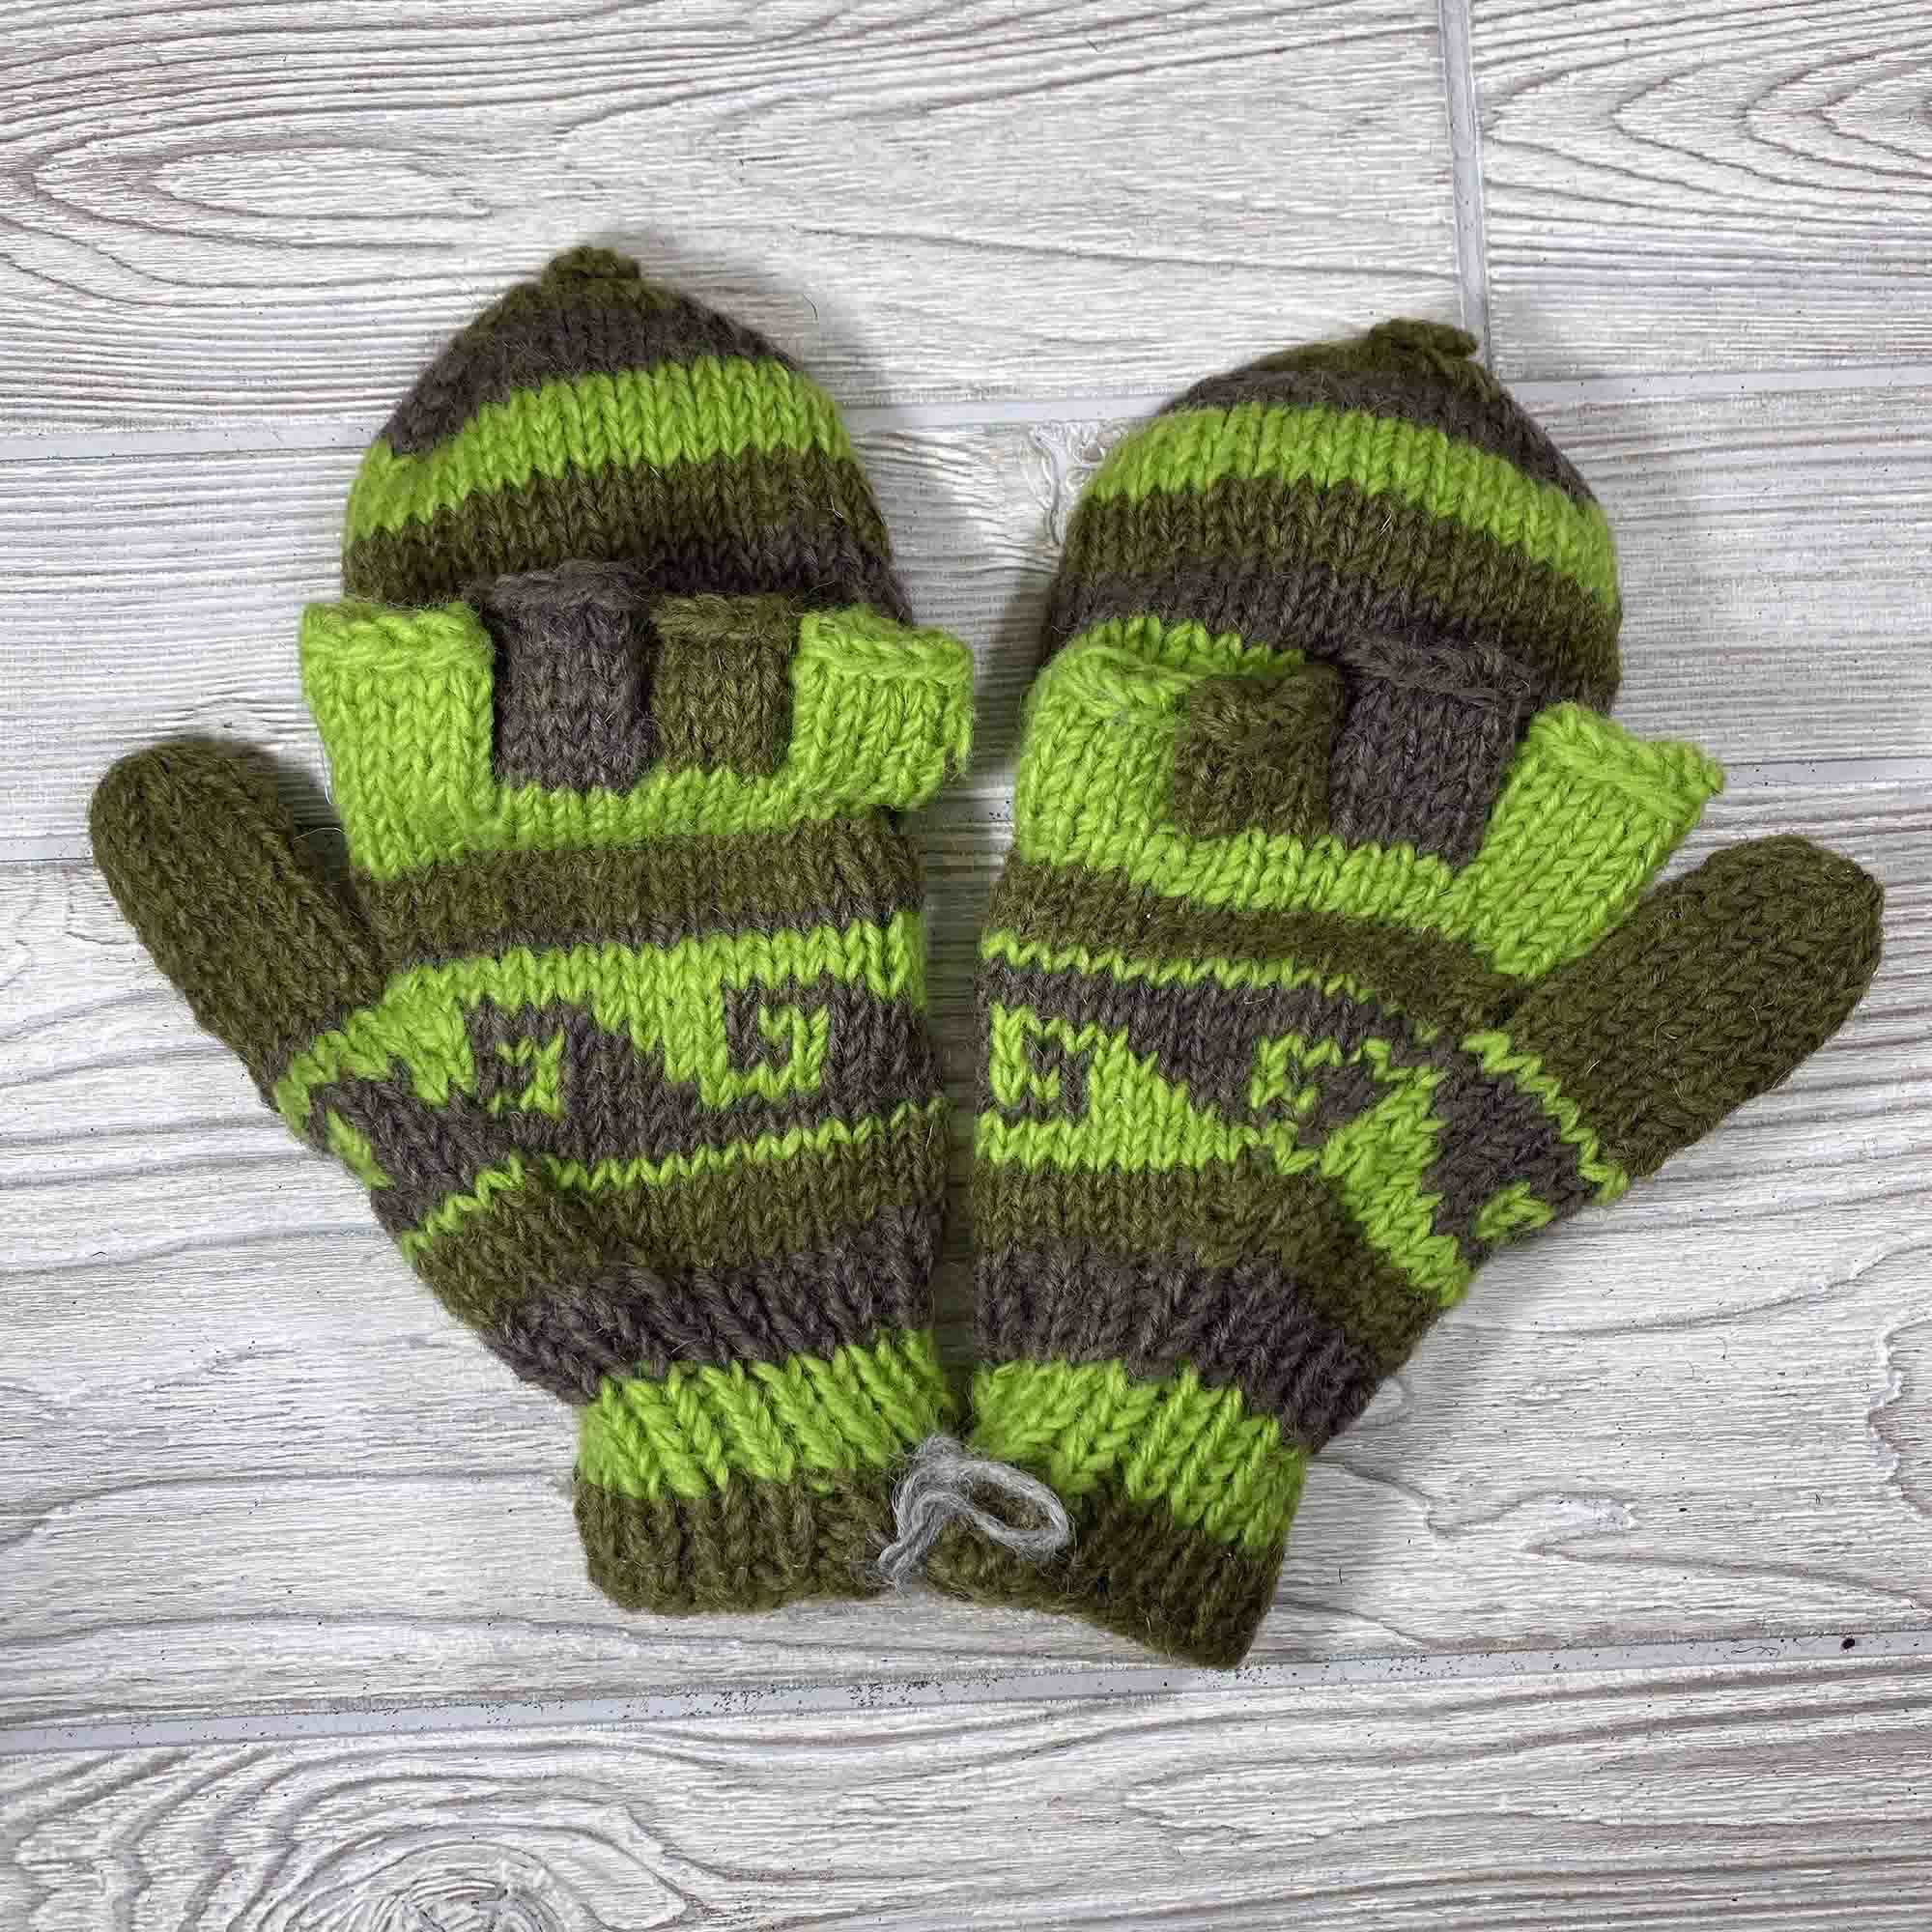 Handknit Wool Fingerless Mittens - Green Brown